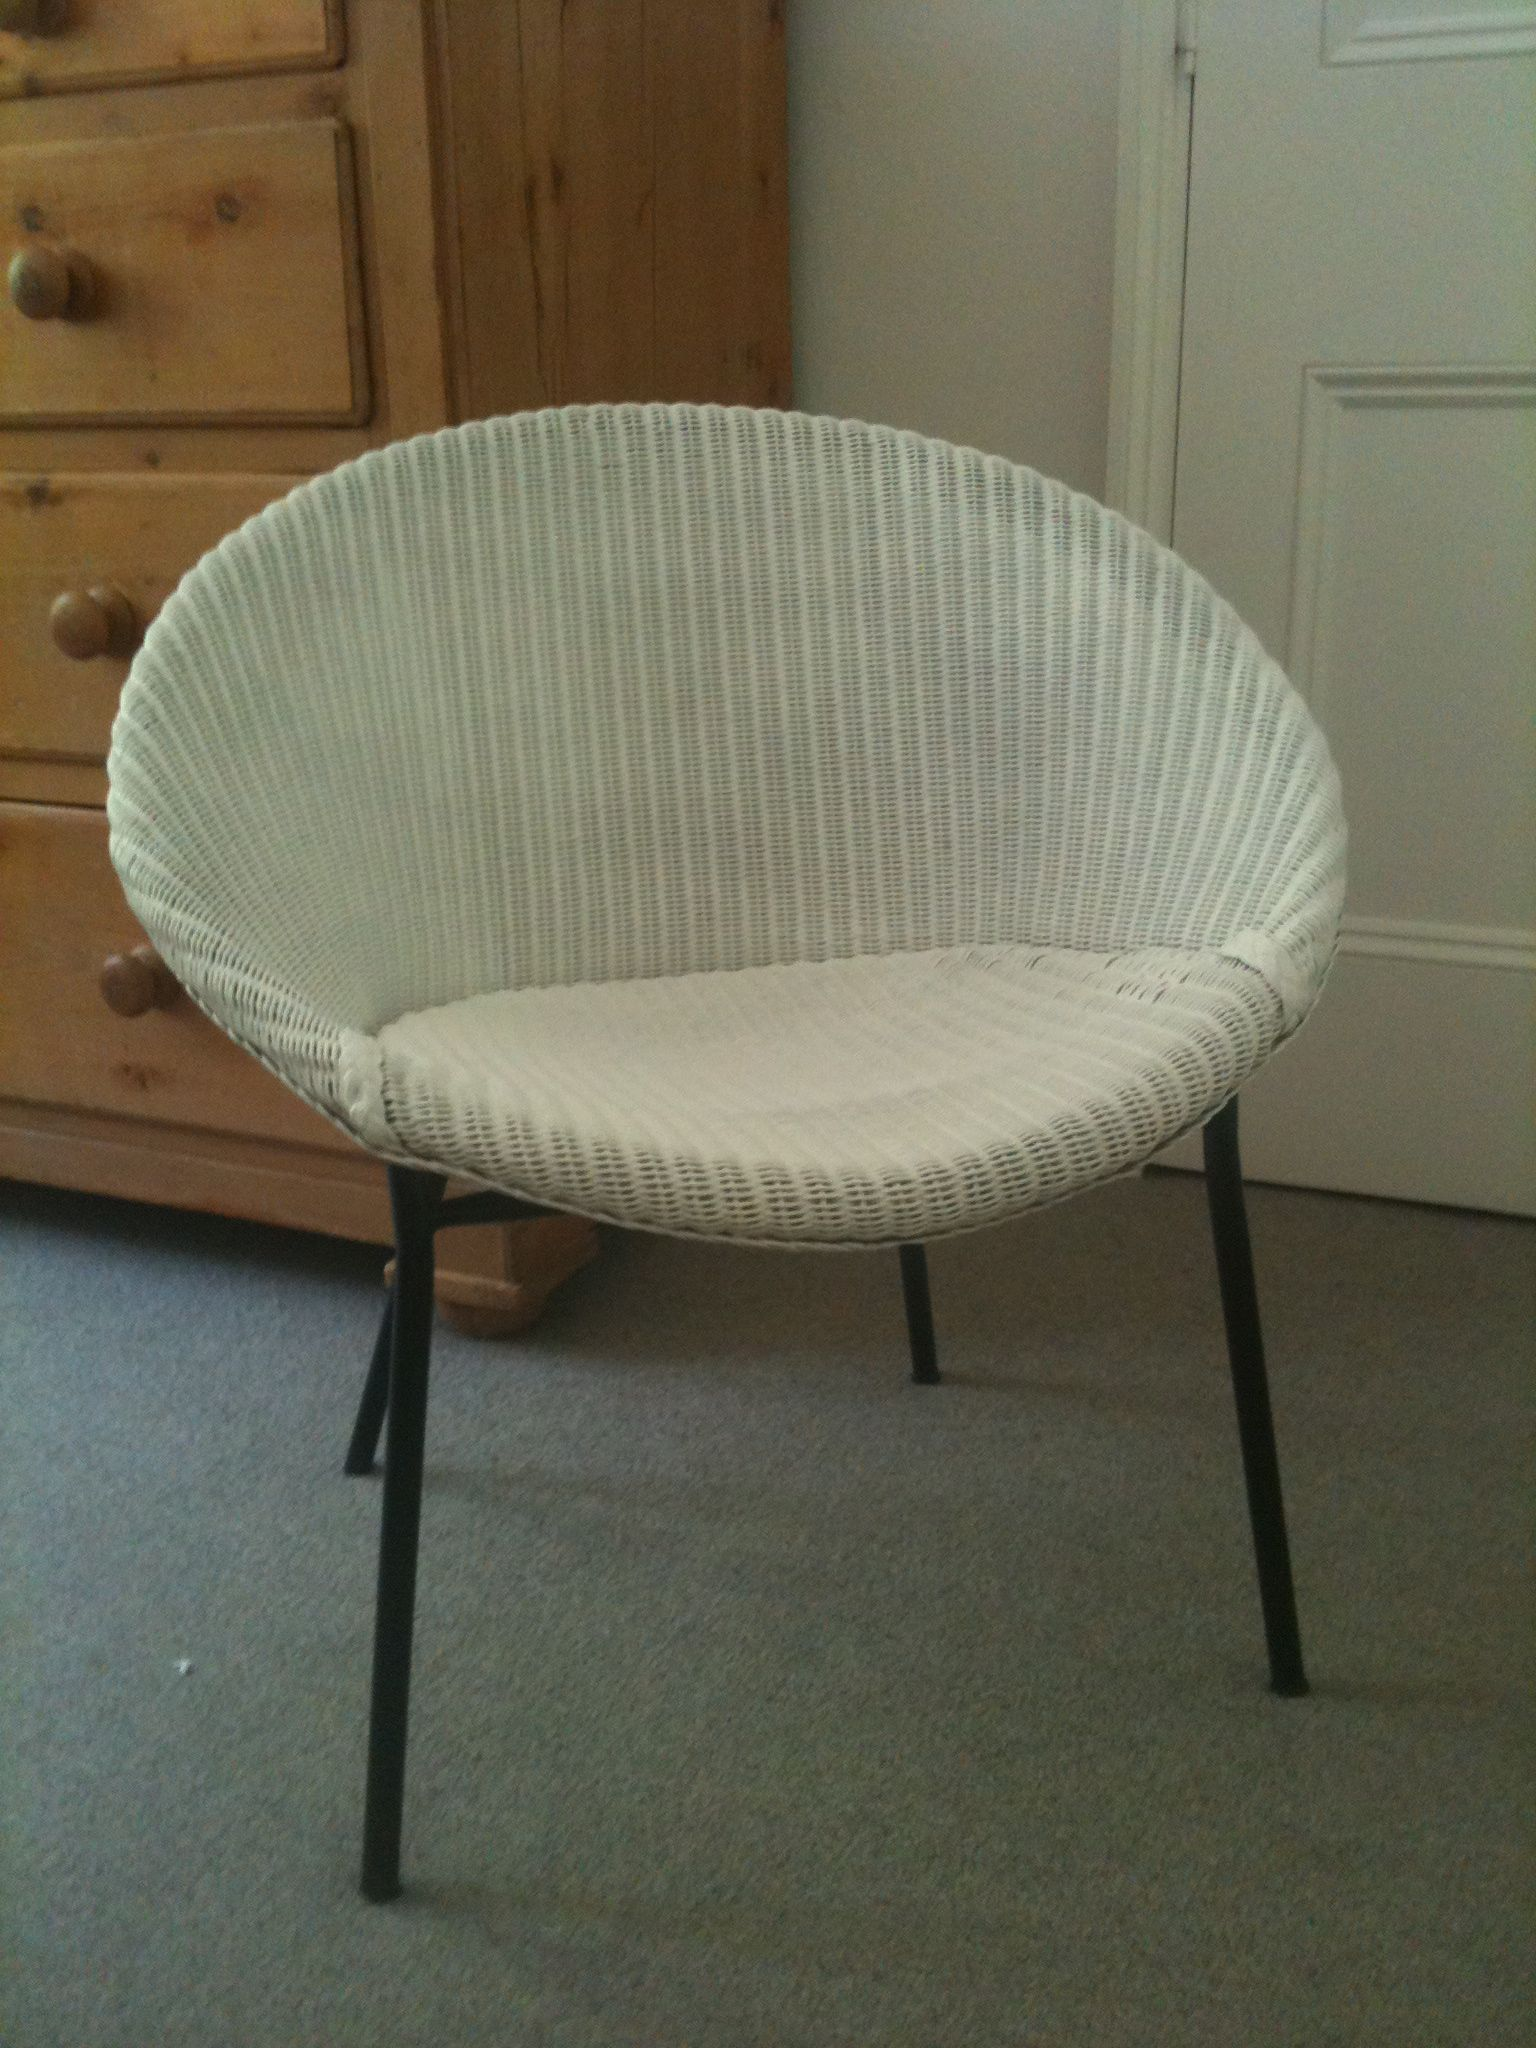 Lloyd loom chair is back carefullycurated uk for H furniture loom chair